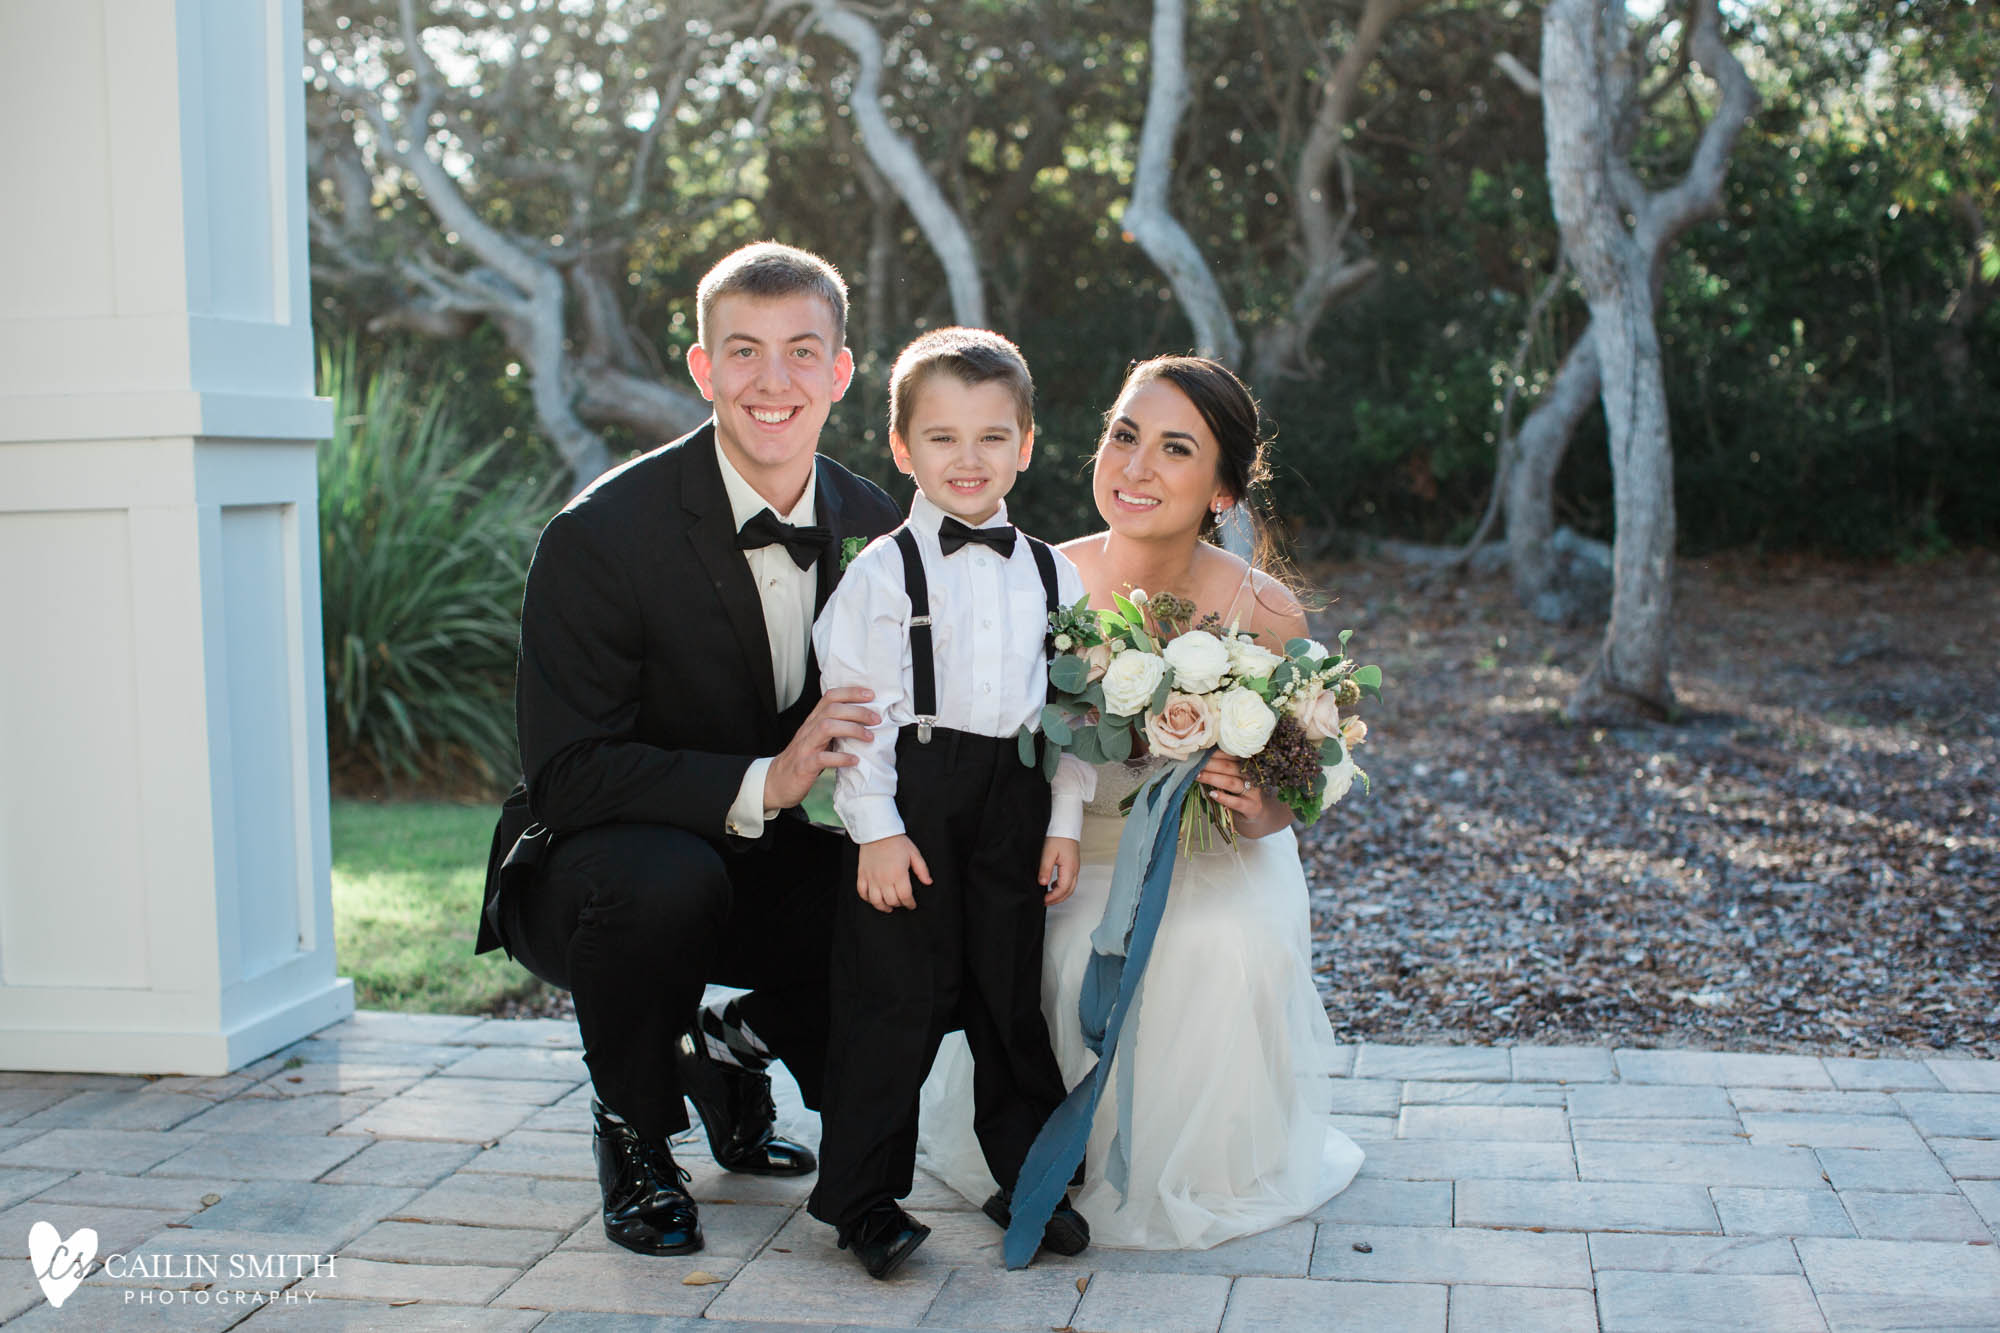 Christina_Matt_Castlegate_Vilano_Beach_Wedding_Photography_0058.jpg